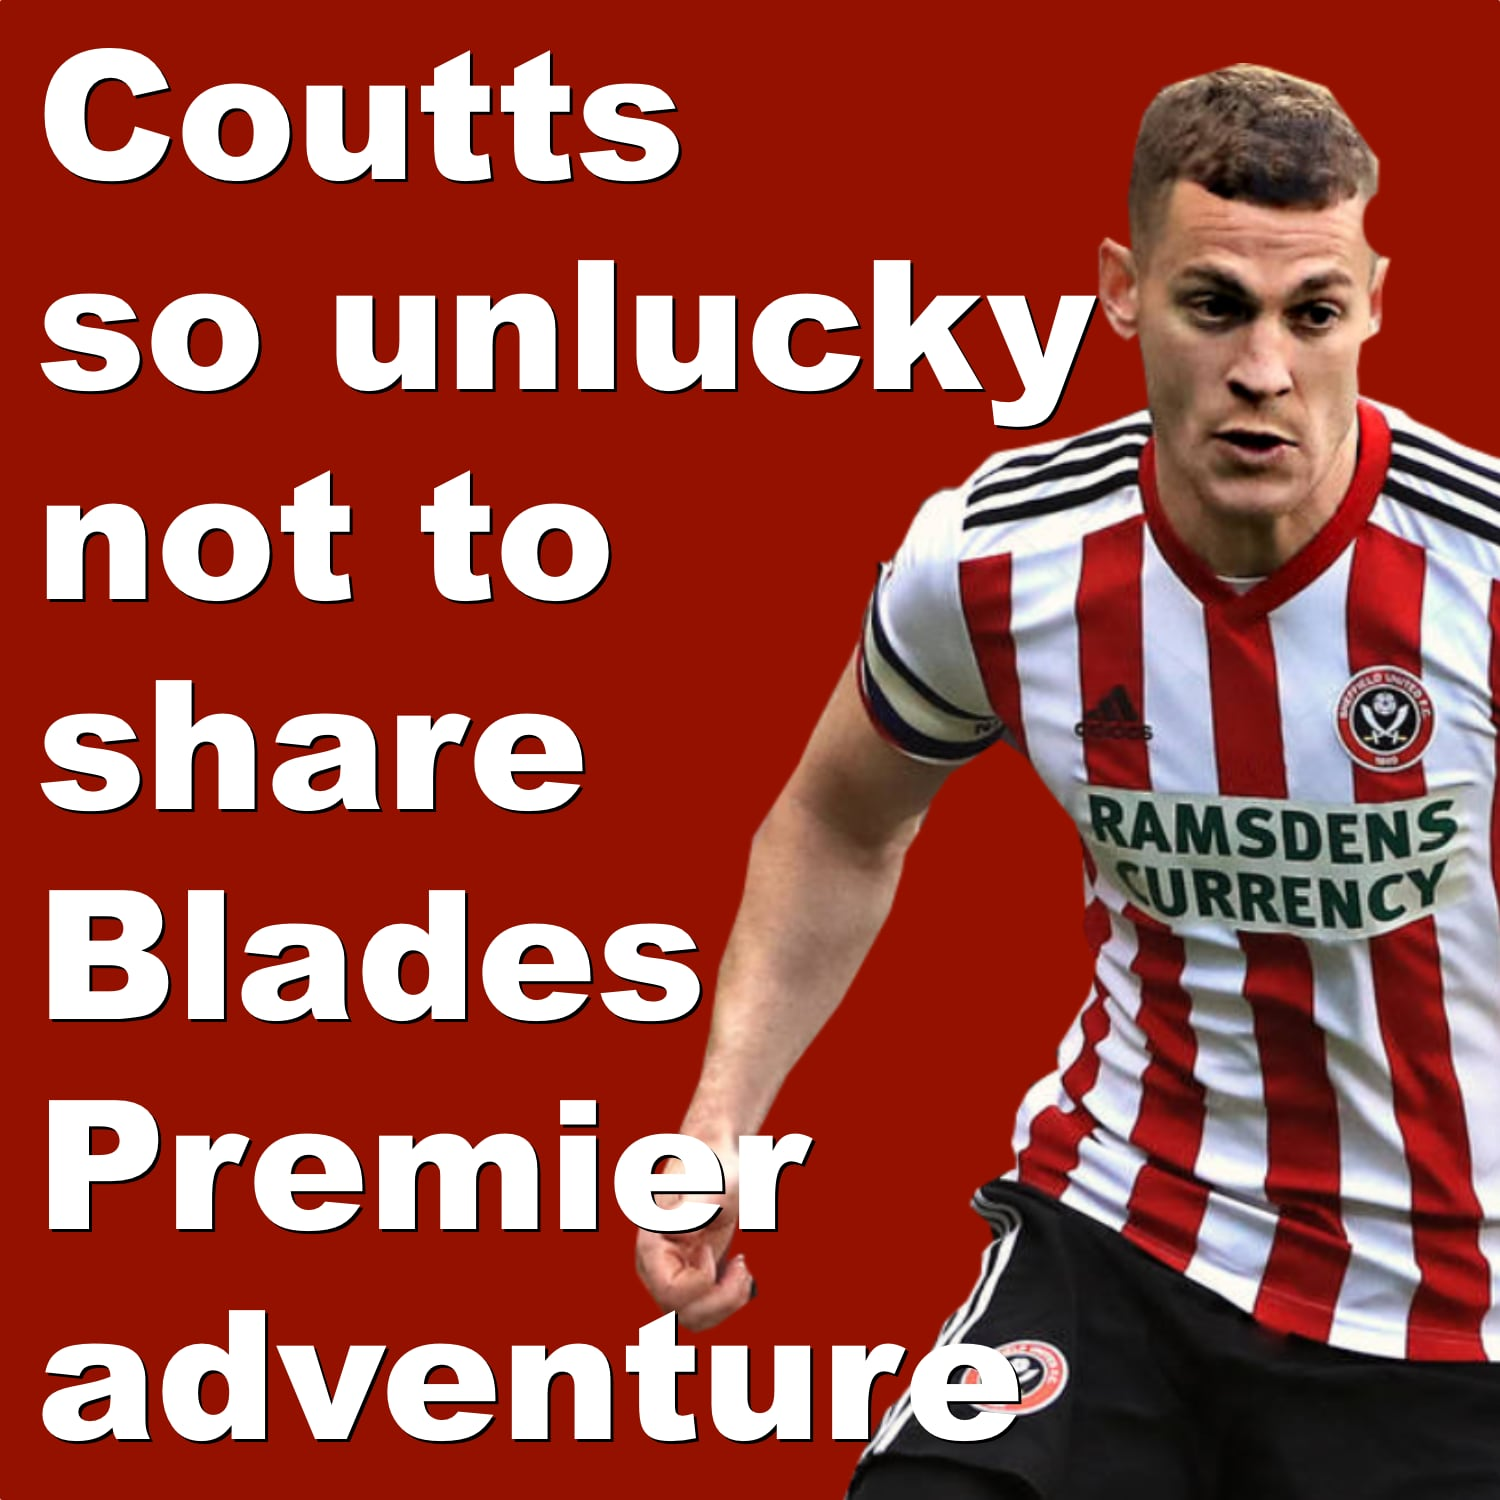 Sheffield+United's+Paul+Coutts+so+unlucky+not+to+be+sharing+Blades+Premier+League+dream